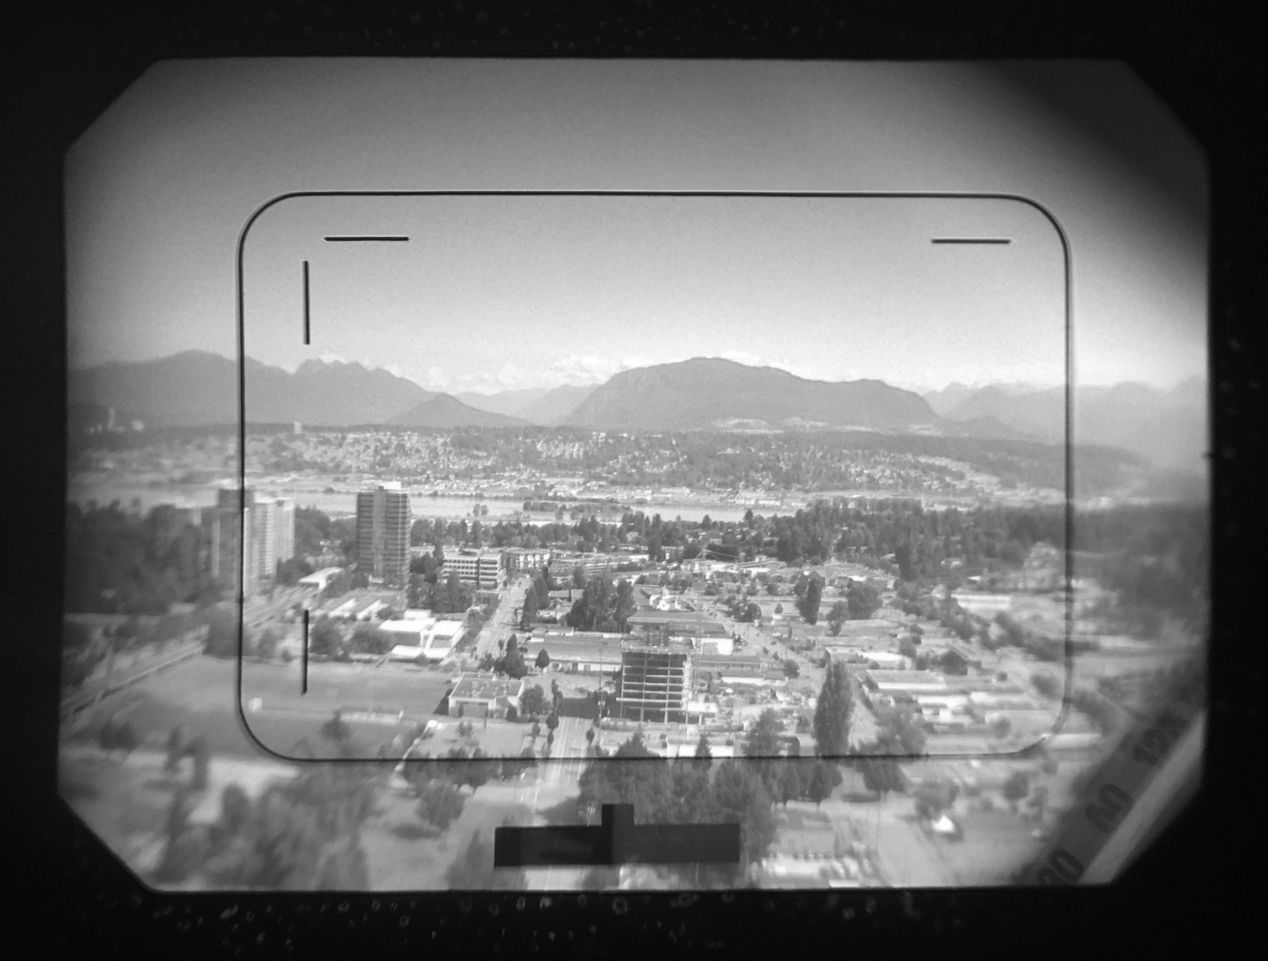 Werramat's viewfinder: frame lines with parallax markings, litght meter indicator (bottom-center) and lens readings (bottom-right). Note that the lens readings are projected via mirrors — it's not an enormous barrel; also, I wasn't able to catch the aperture values with my iPhone here, which are normally visible if you look through (even with glasses on).